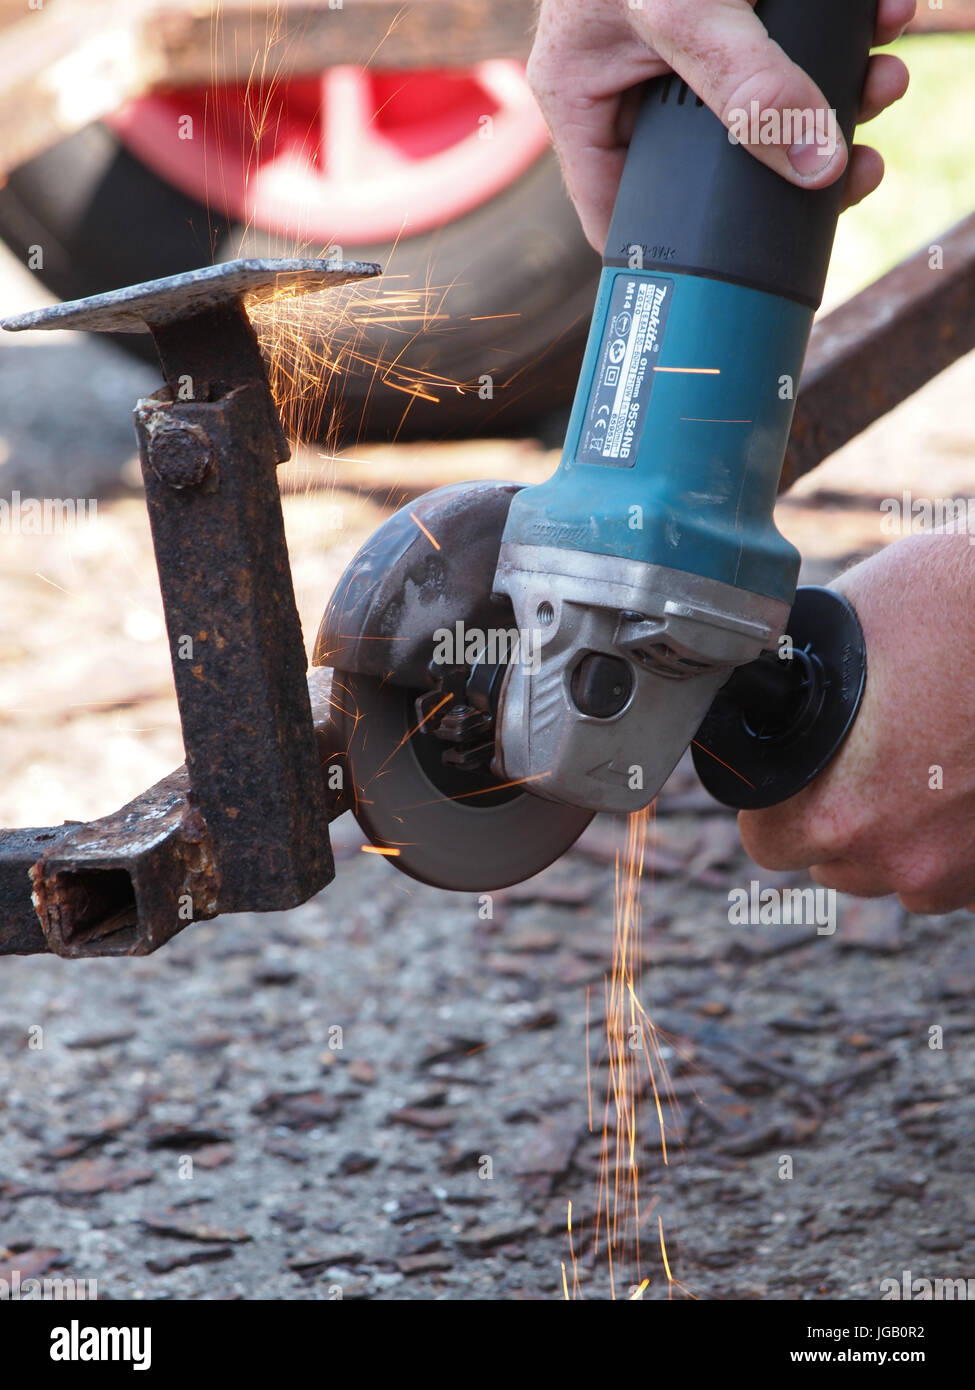 Close up view of an angle grinder being used on a rusty trailer. - Stock Image